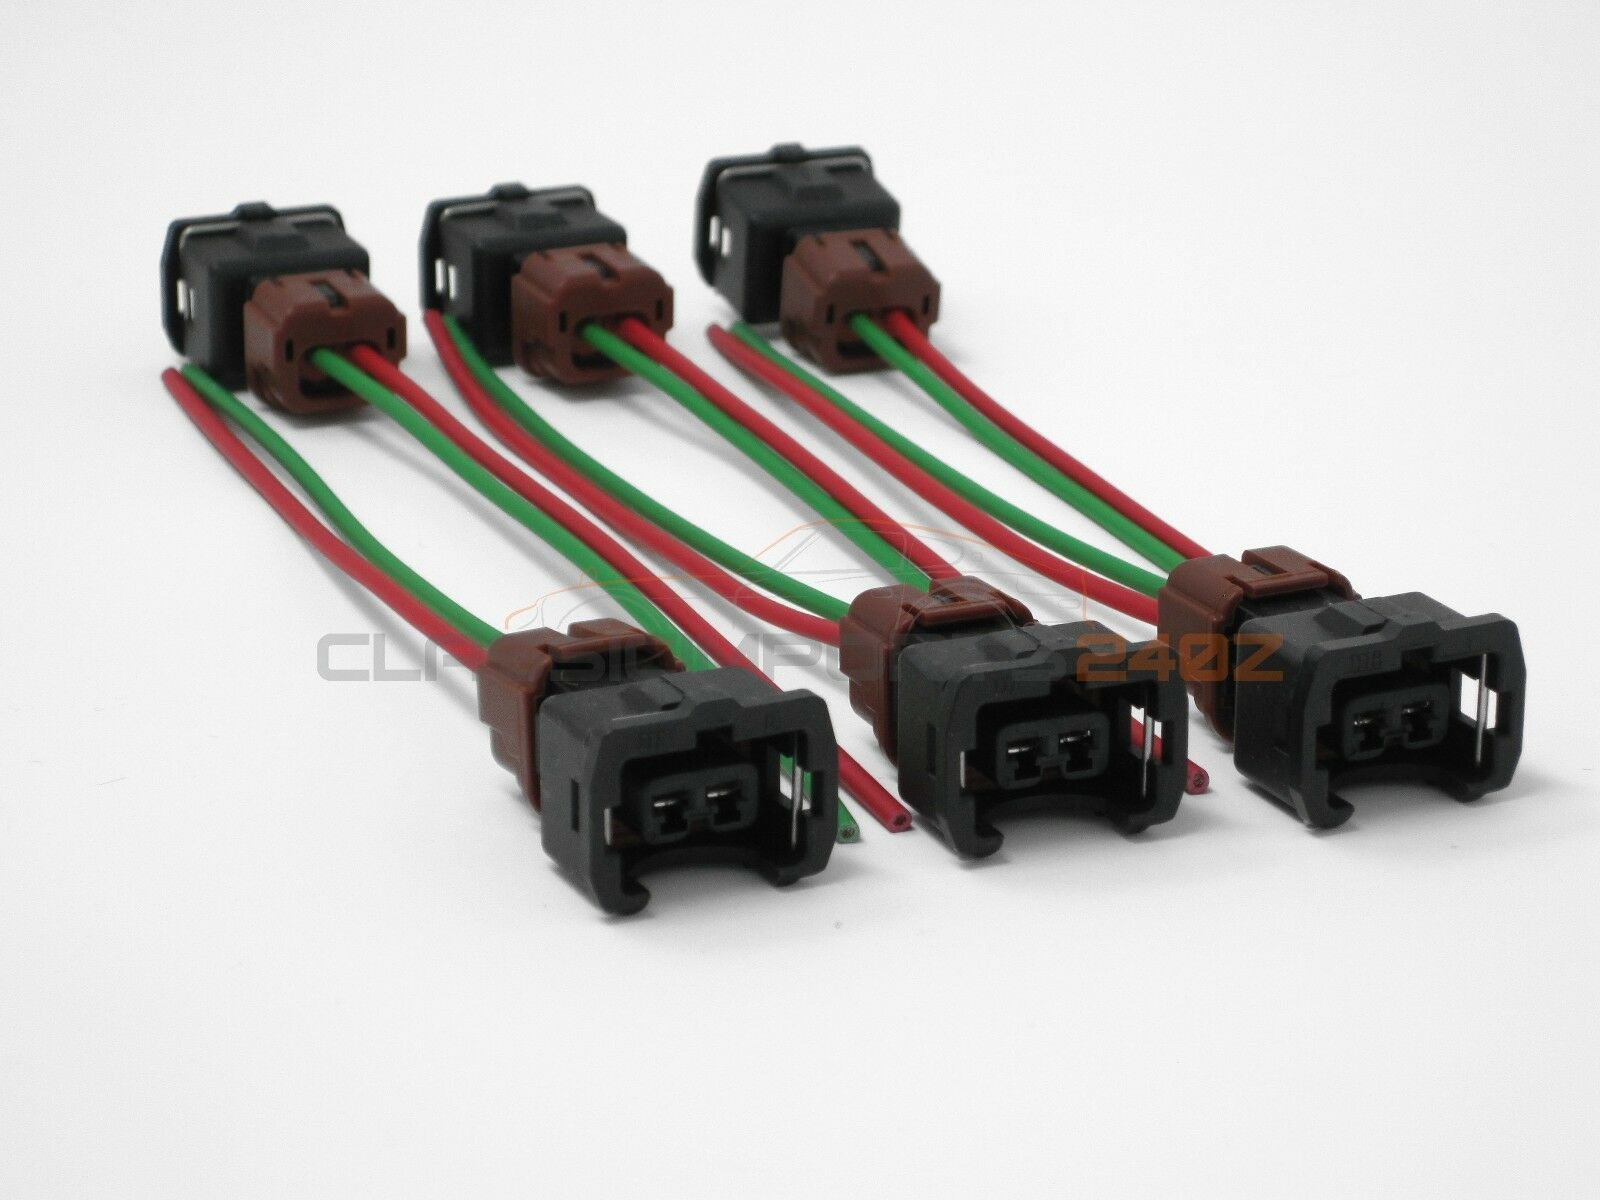 hight resolution of fuel injector wiring harness connectors for nissan 300zx z31 1984 1987 n a turbo